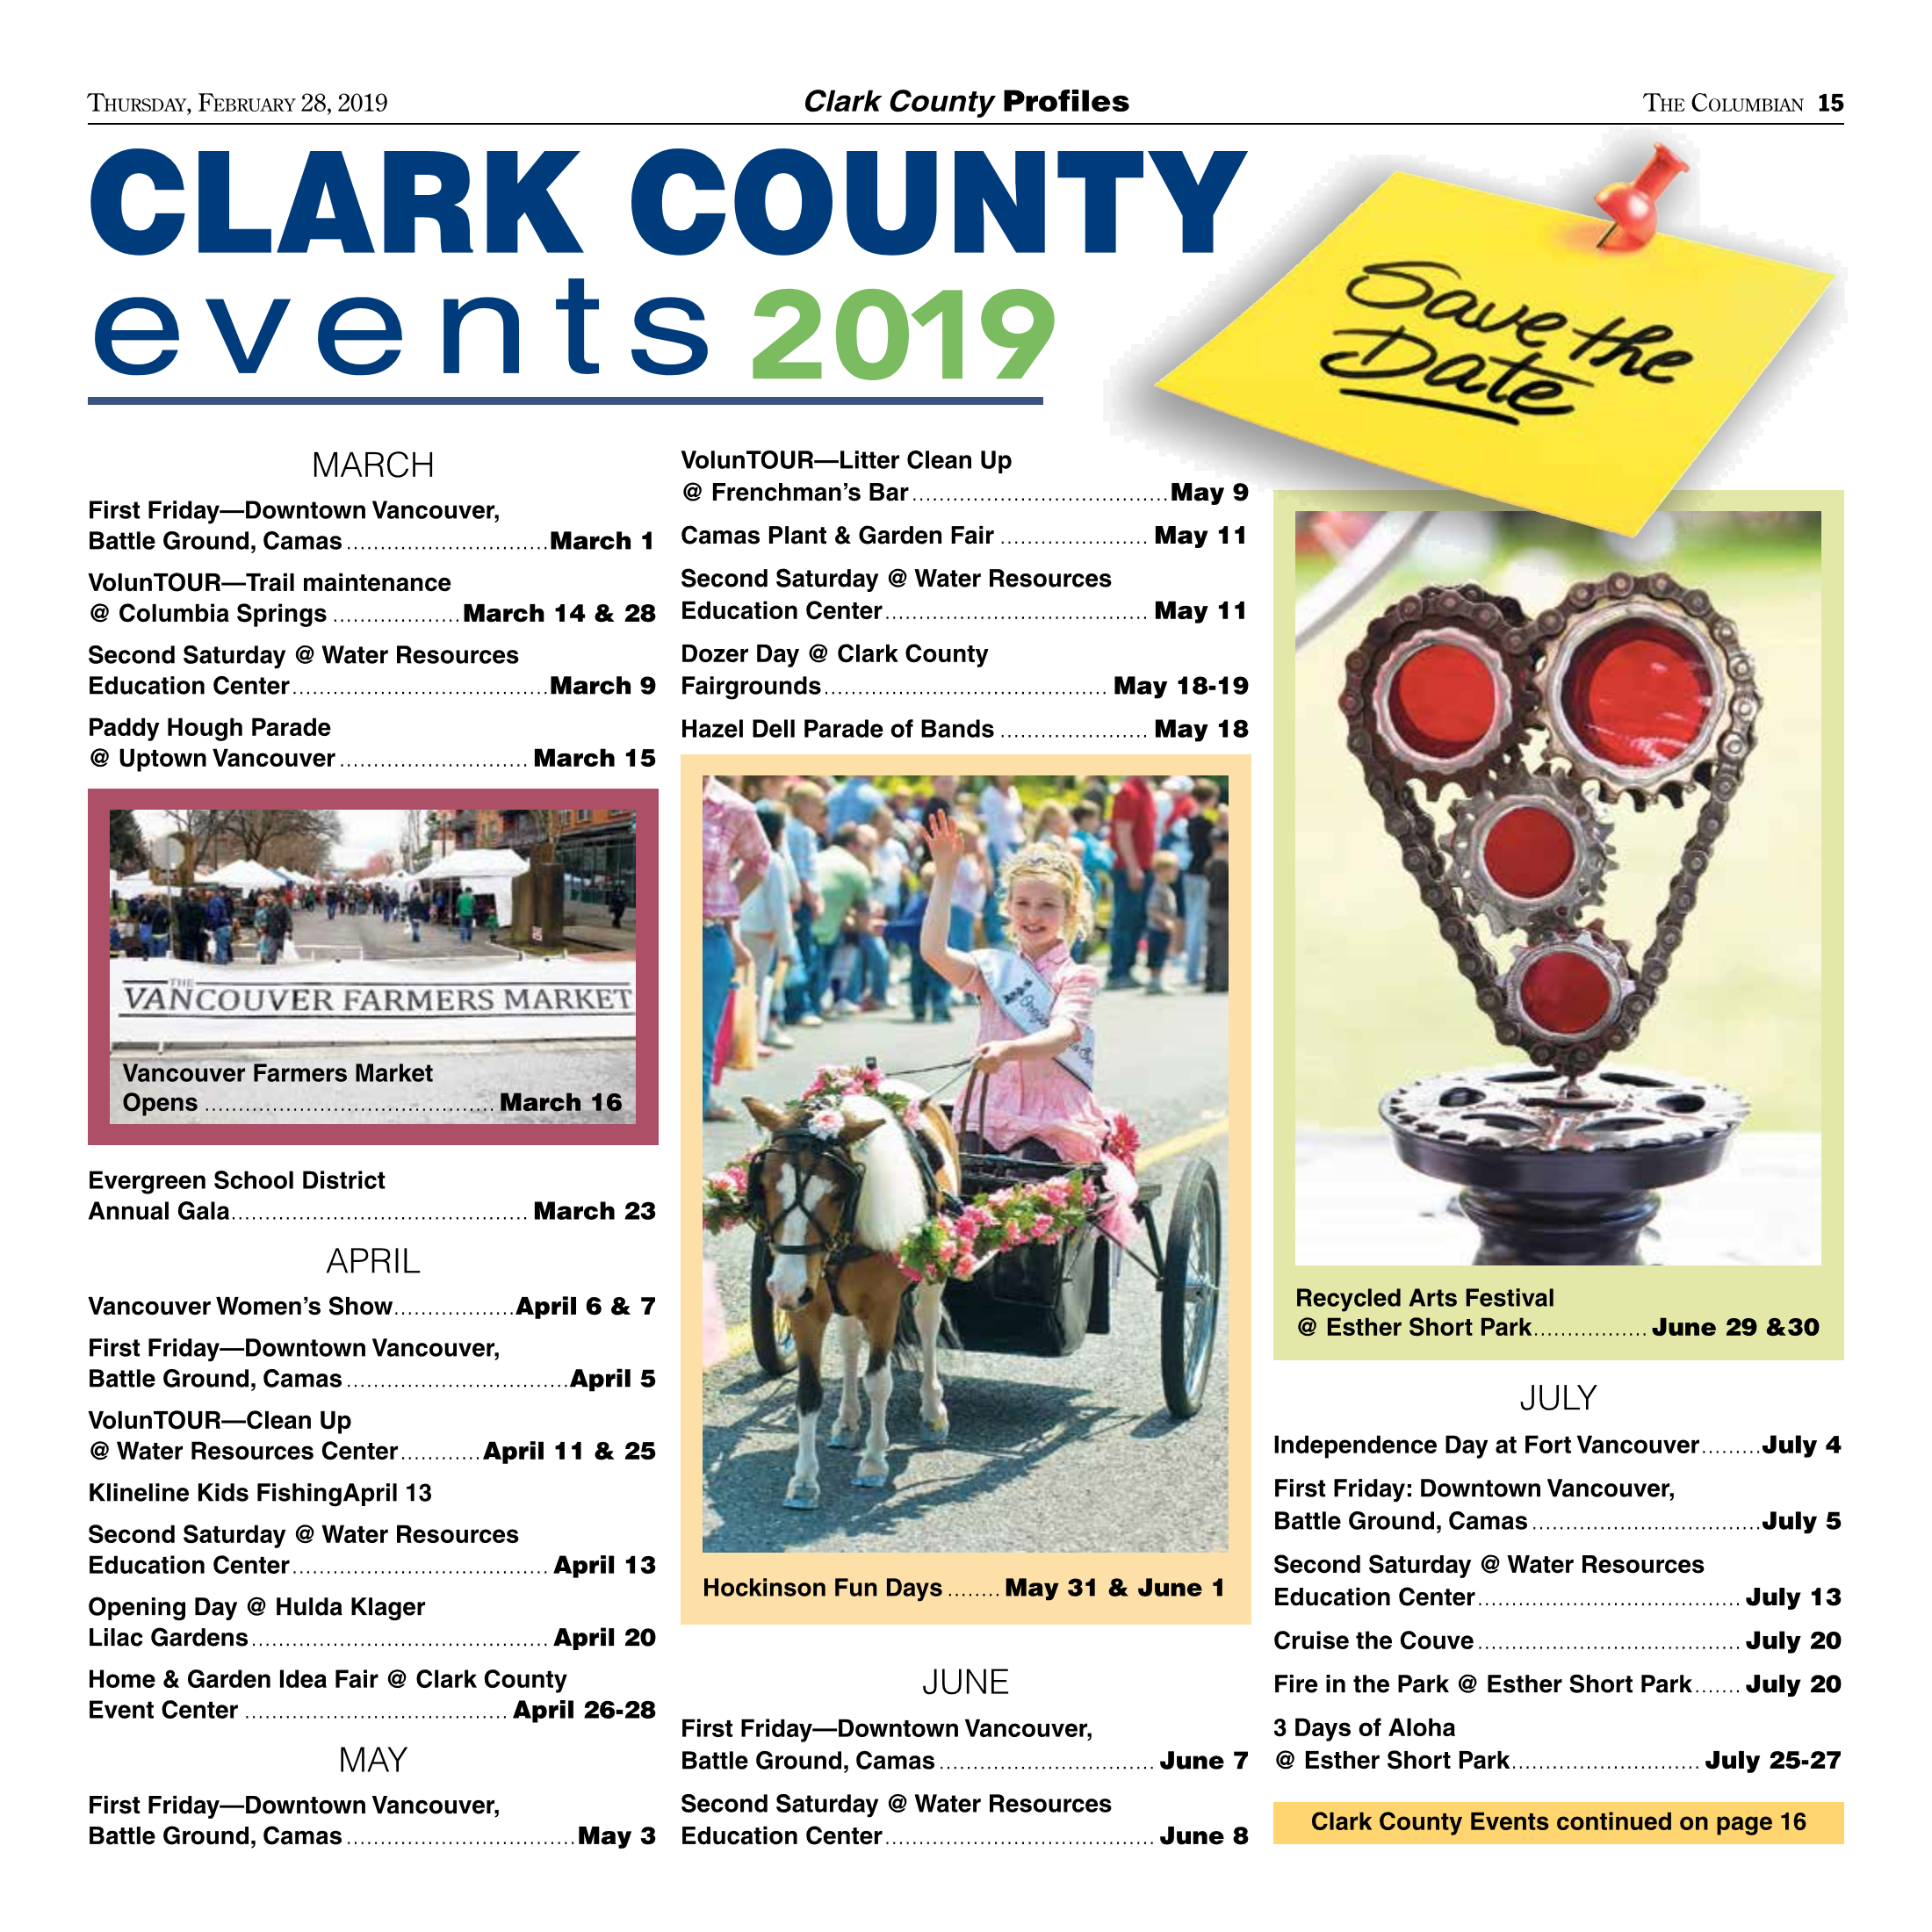 2019 Clark County Profiles_Page_15